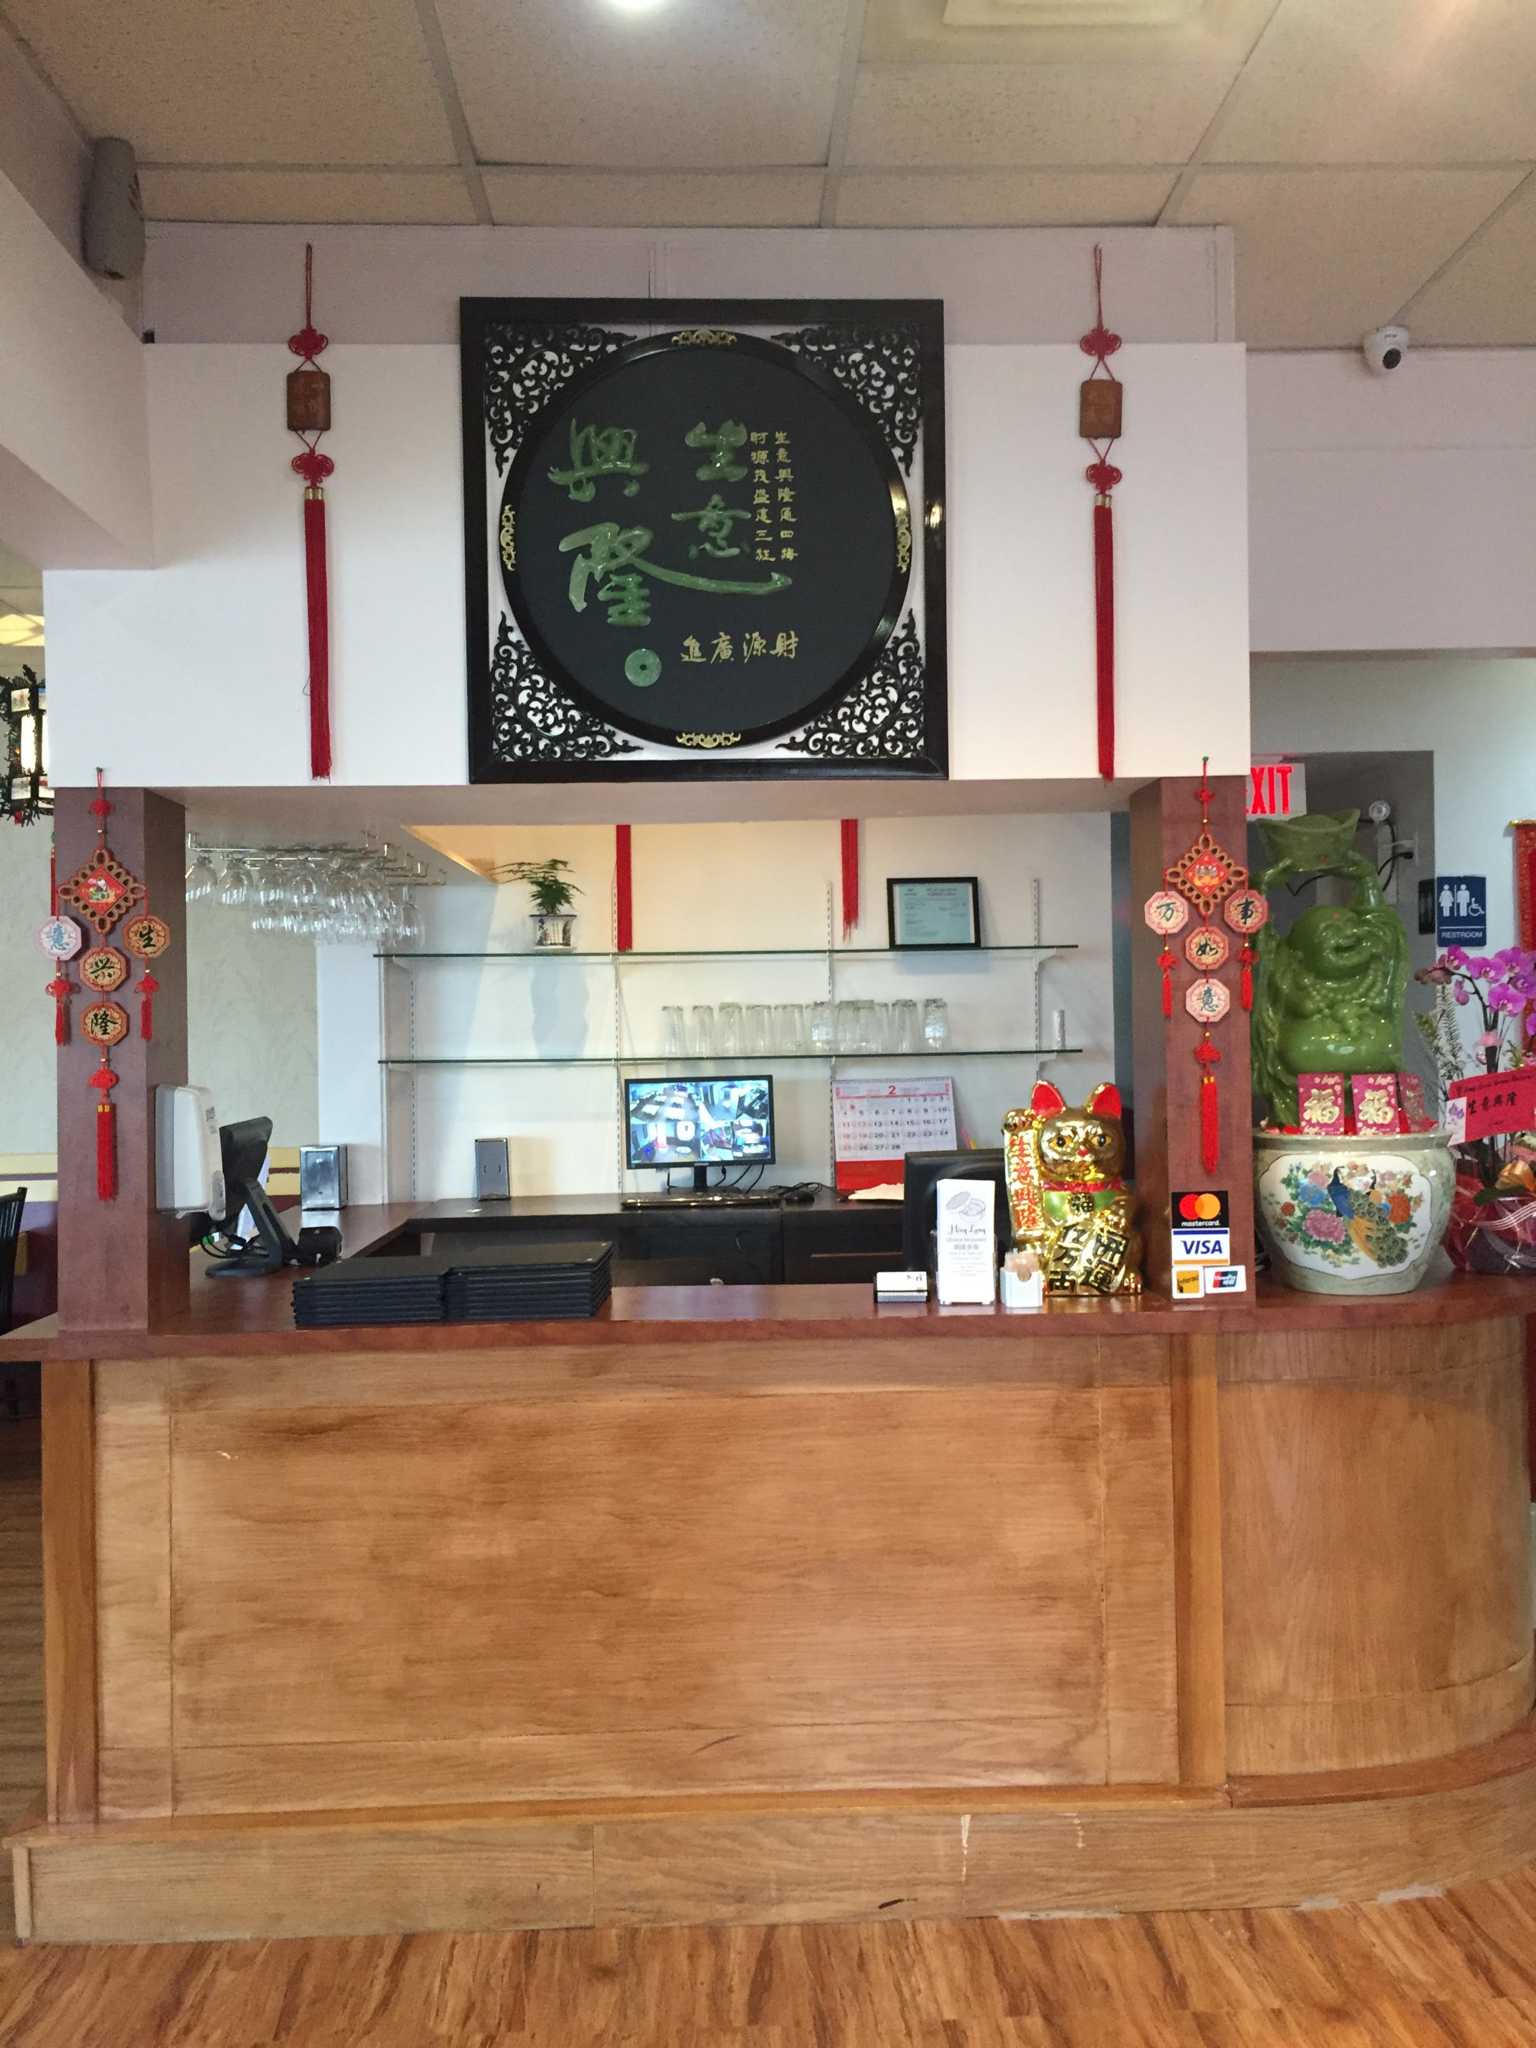 Hing Lung Chinese Restaurant in Chilliwack